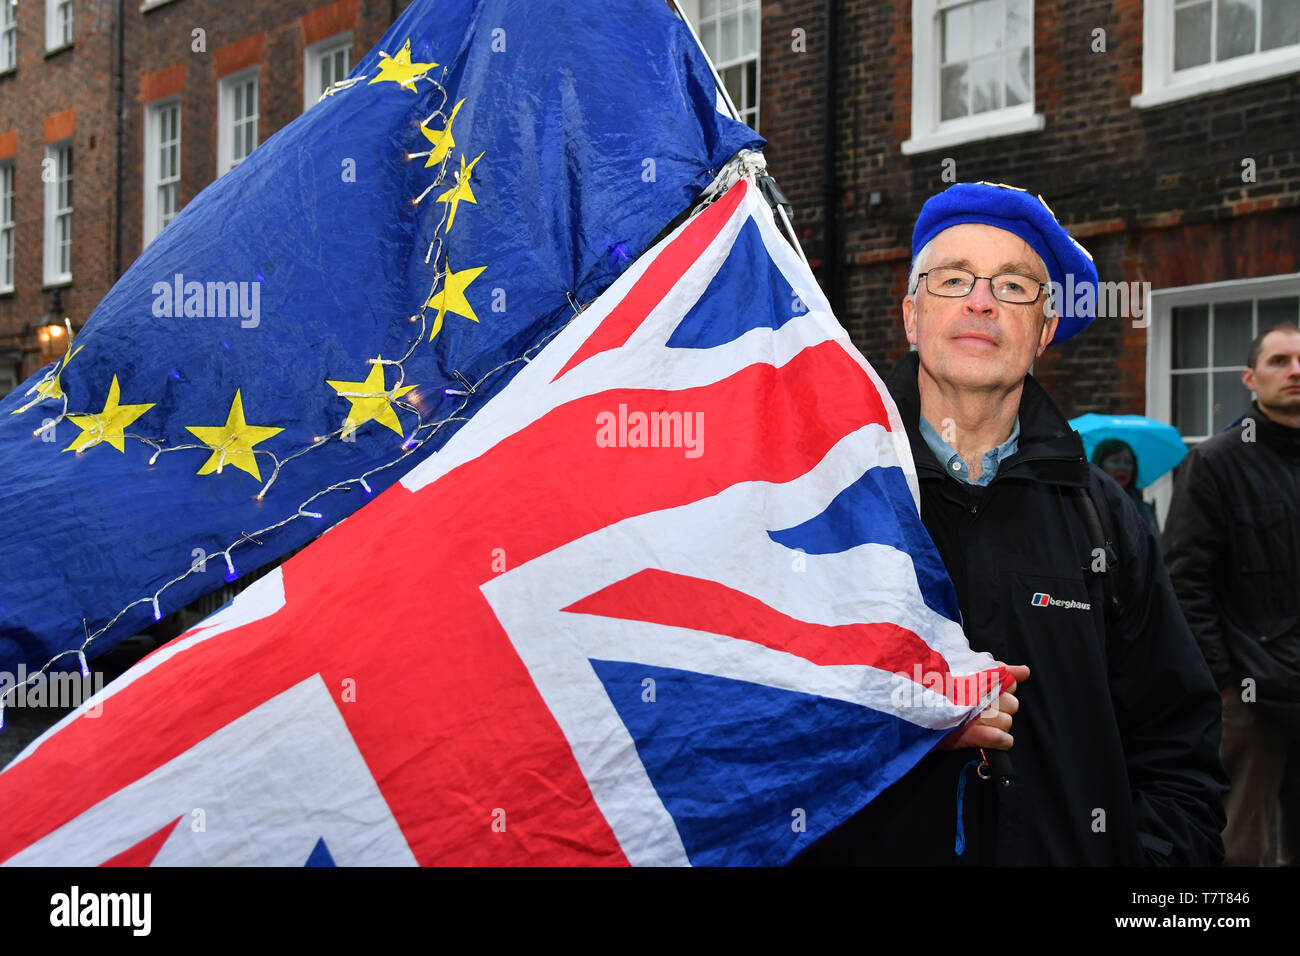 London, UK. 8th May, 2018. Dash Arts host an anti-Brexit European Flash Mob playing Beethoven's 9th Symphony (Ode to Joy) at Parliament Yard, Westminster Abbey and St John Smith Square ahead of the European Paliament Election on 8 May 2019, London, UK. Credit: Picture Capital/Alamy Live News - Stock Image